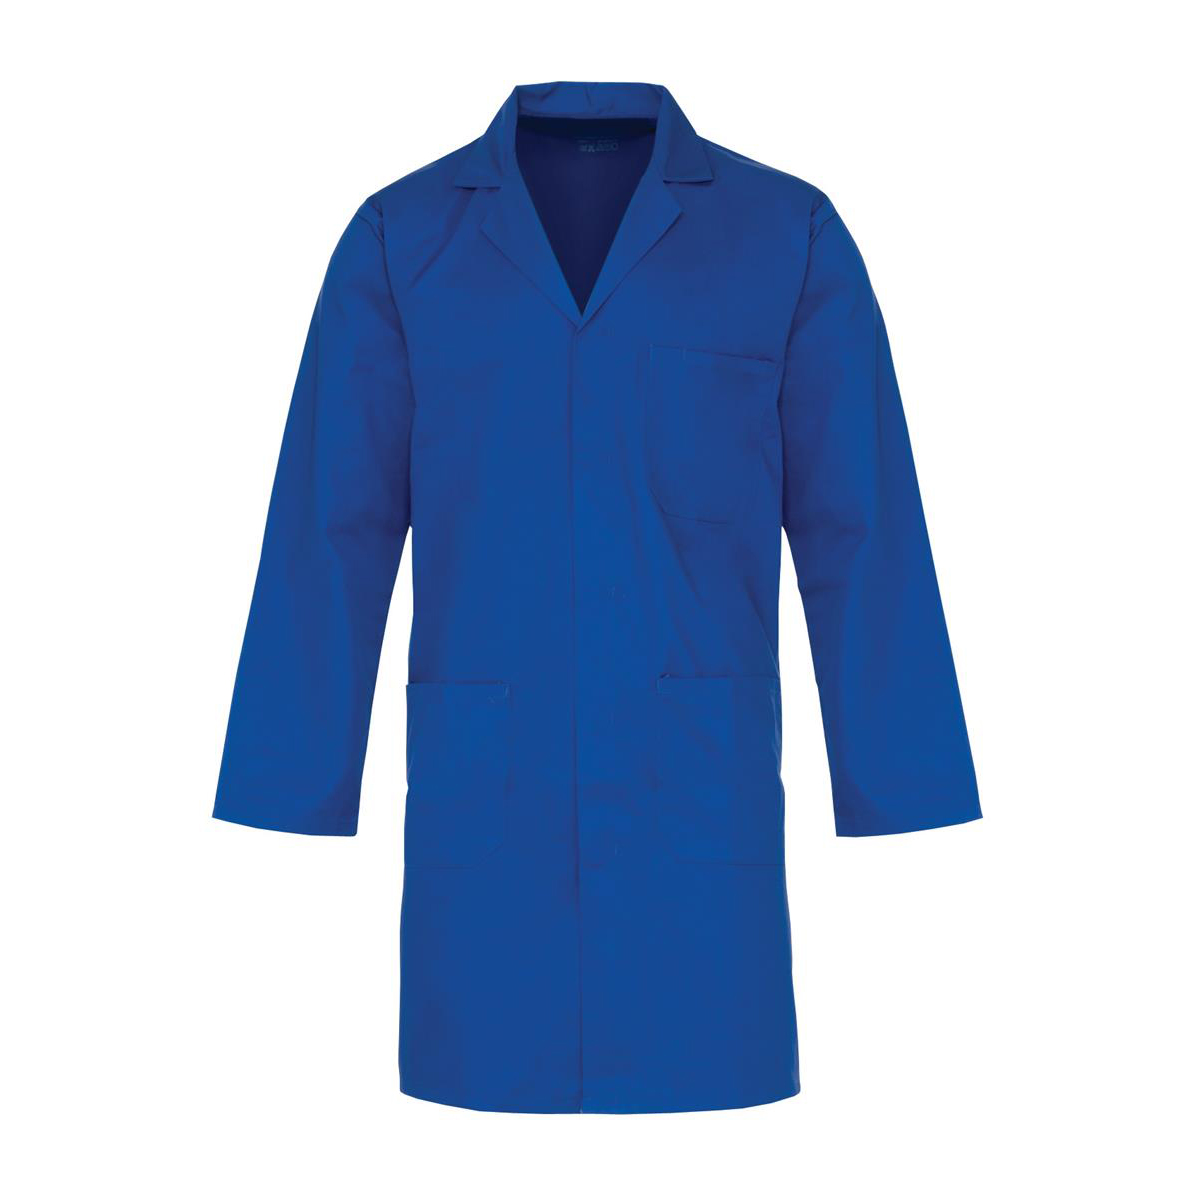 Safety Click Lab Coat Polycotton with 3 Pockets 2XL Navy Ref PCWCN50 *Approx 3 Day Leadtime*